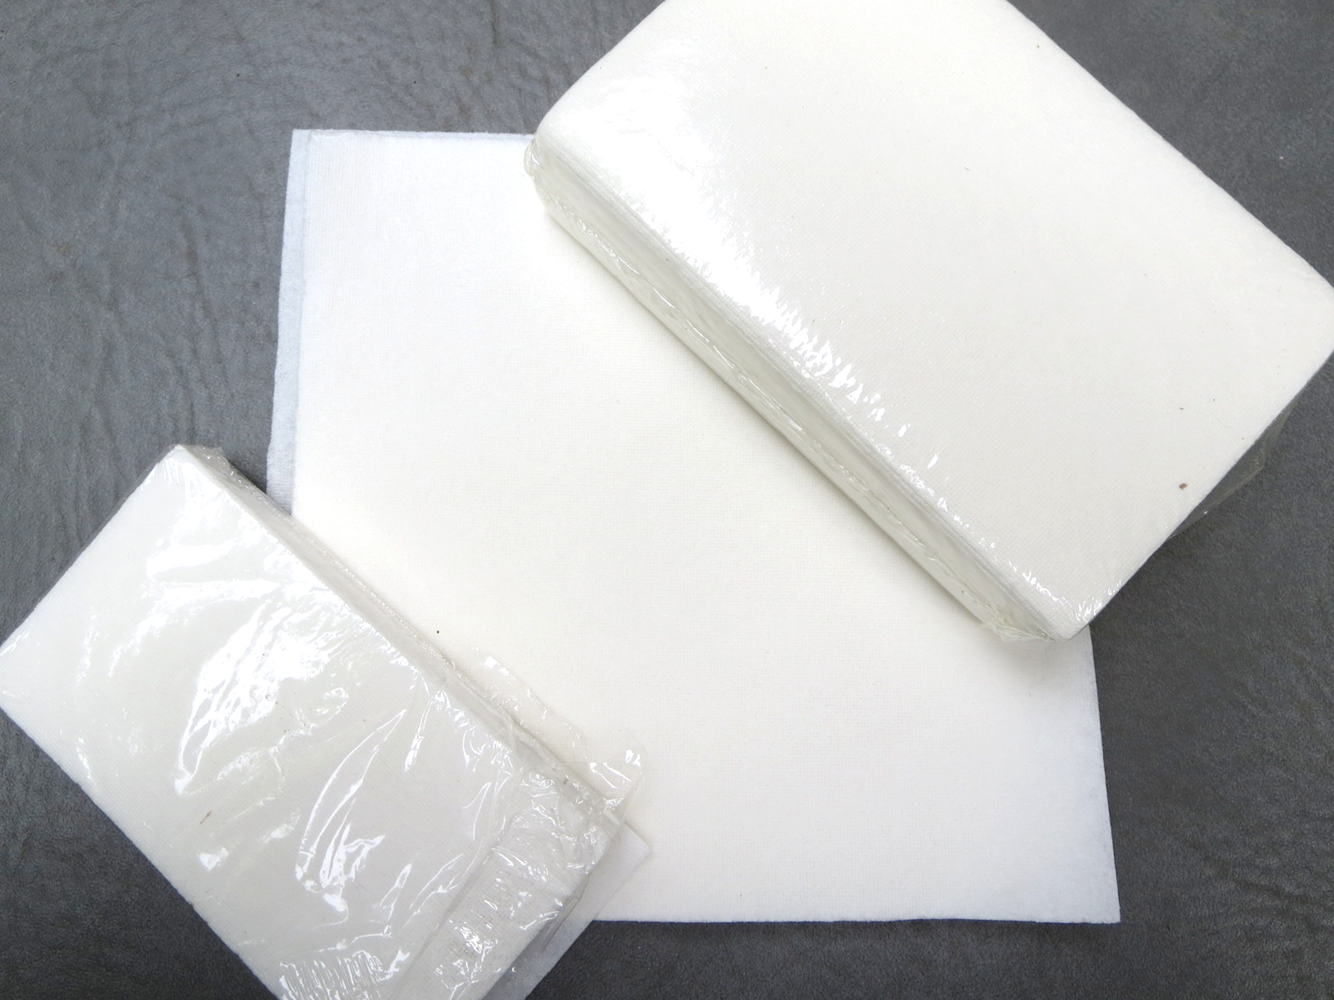 #02-1282CG21 DriMop® Medical Liquid Absorber/Solidifier Laminated Paper Sheets - 4` x 4.5`